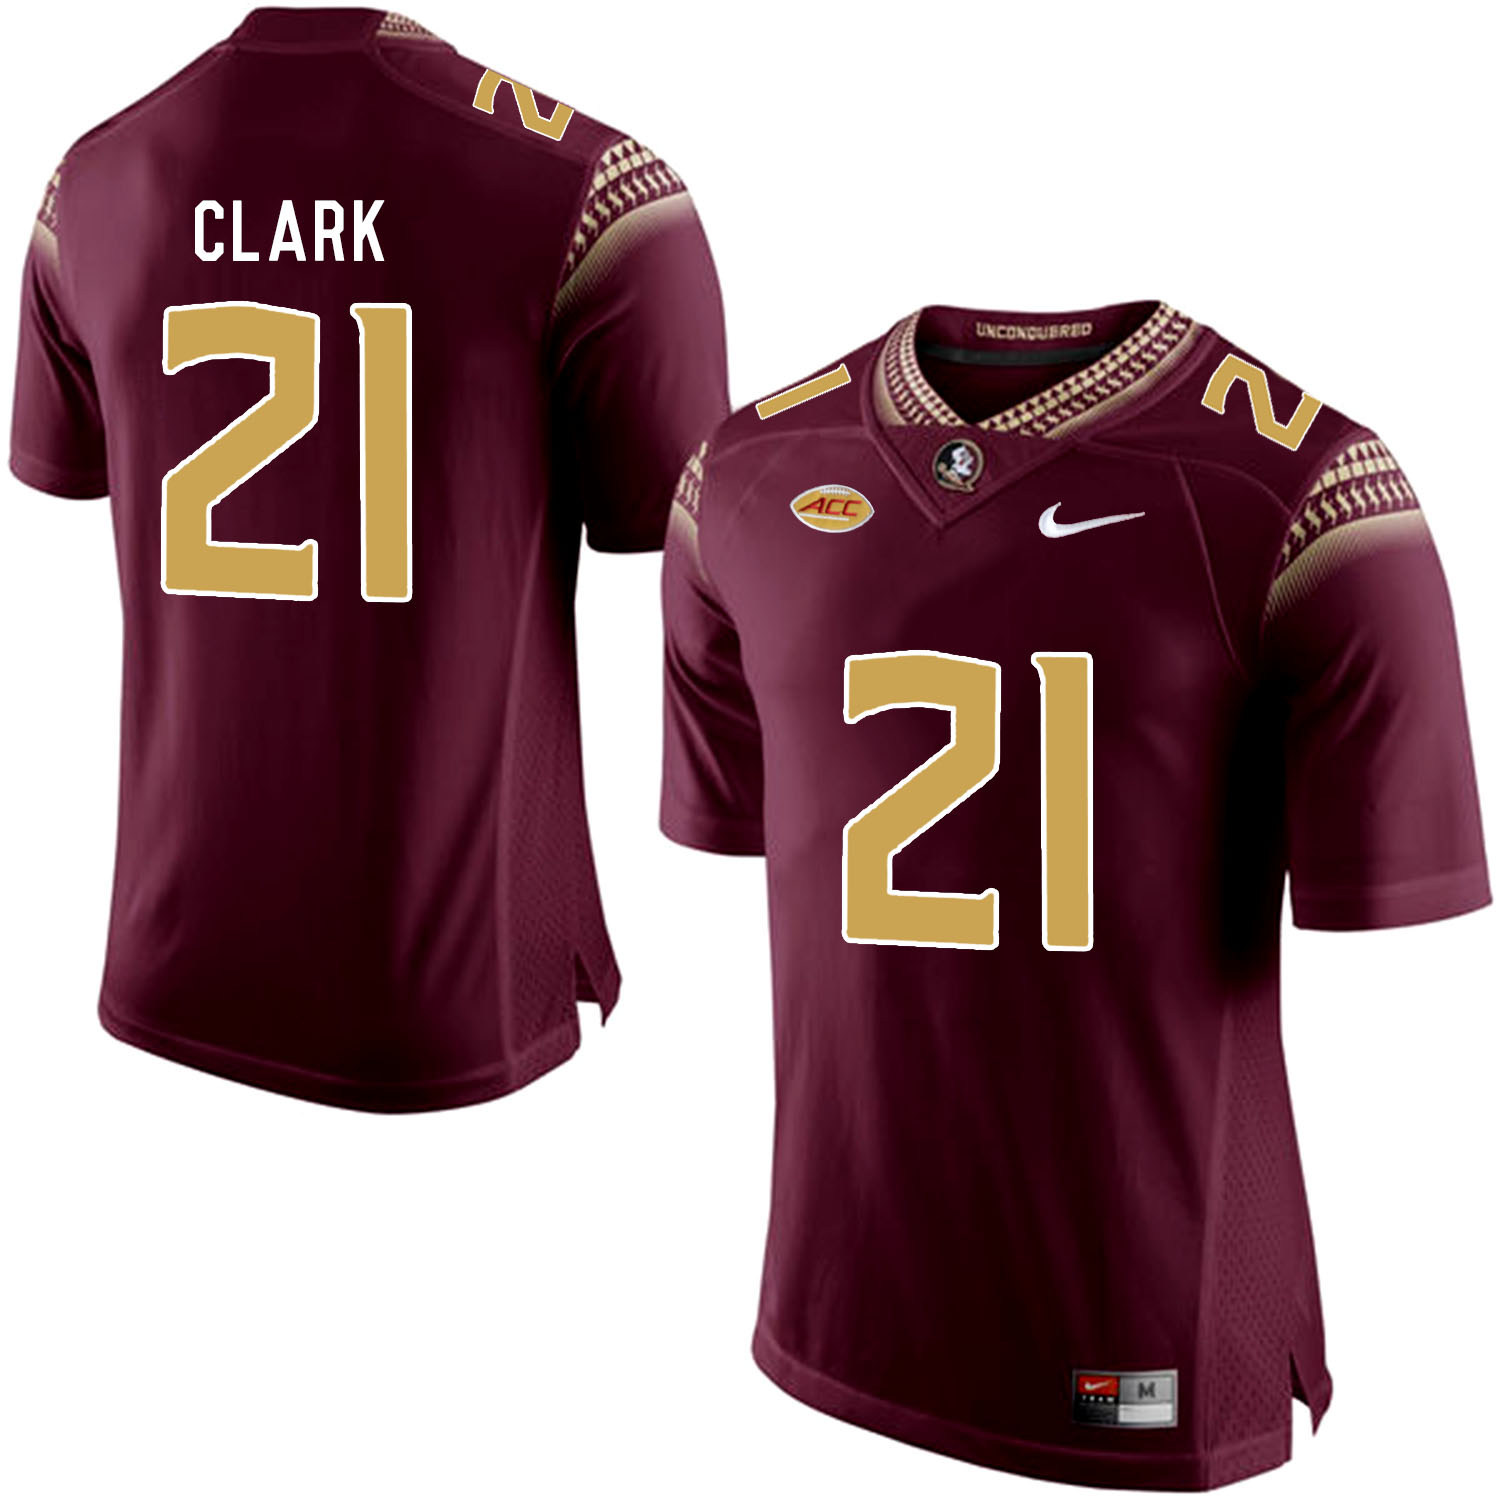 Florida State Seminoles 21 Corey Clark Marroon College Football Jersey